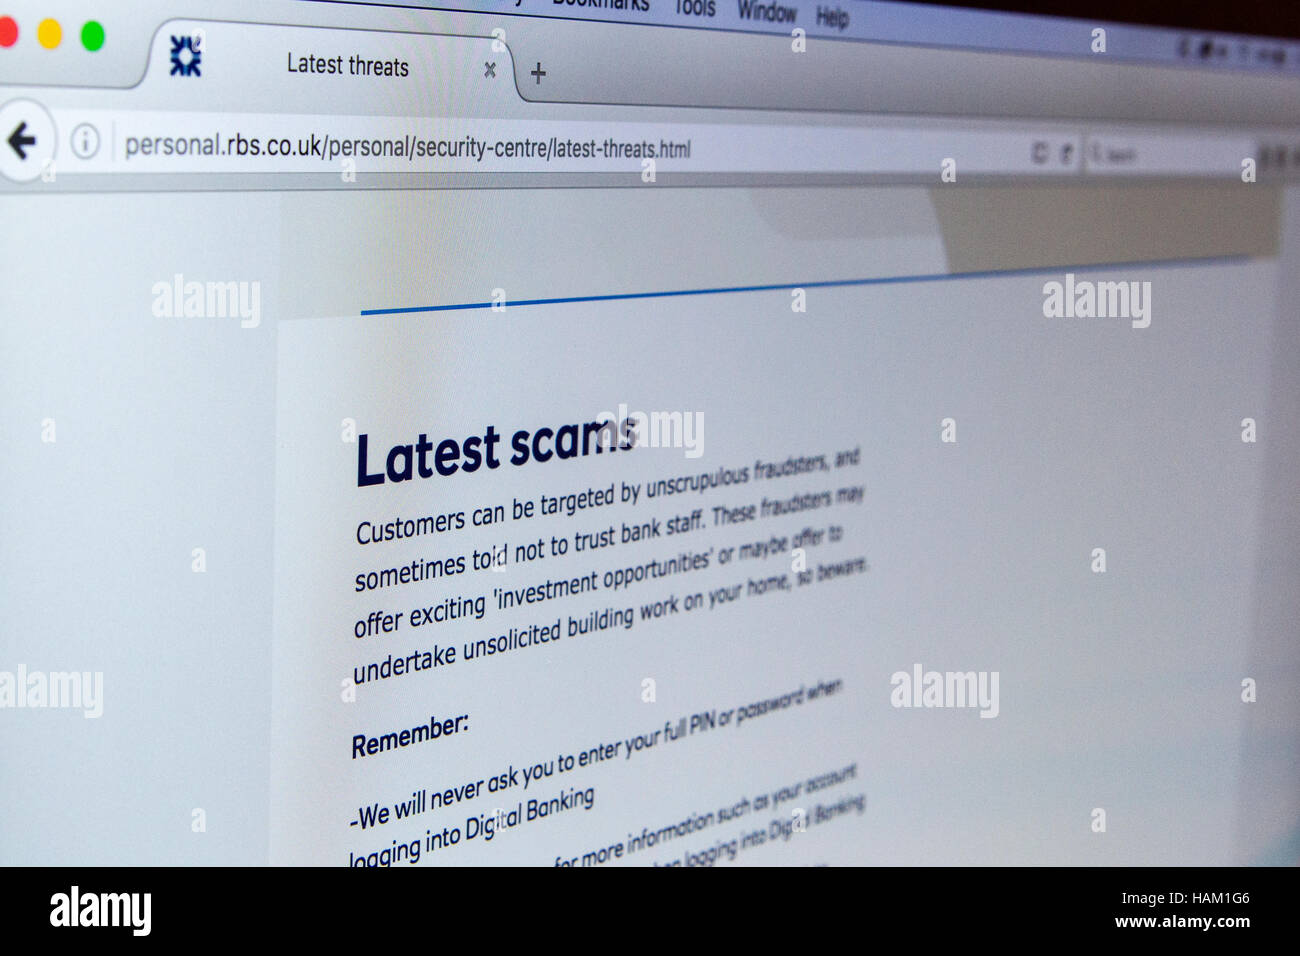 RBS Royal Bank of Scotland Online cyber security Stock Photo ...